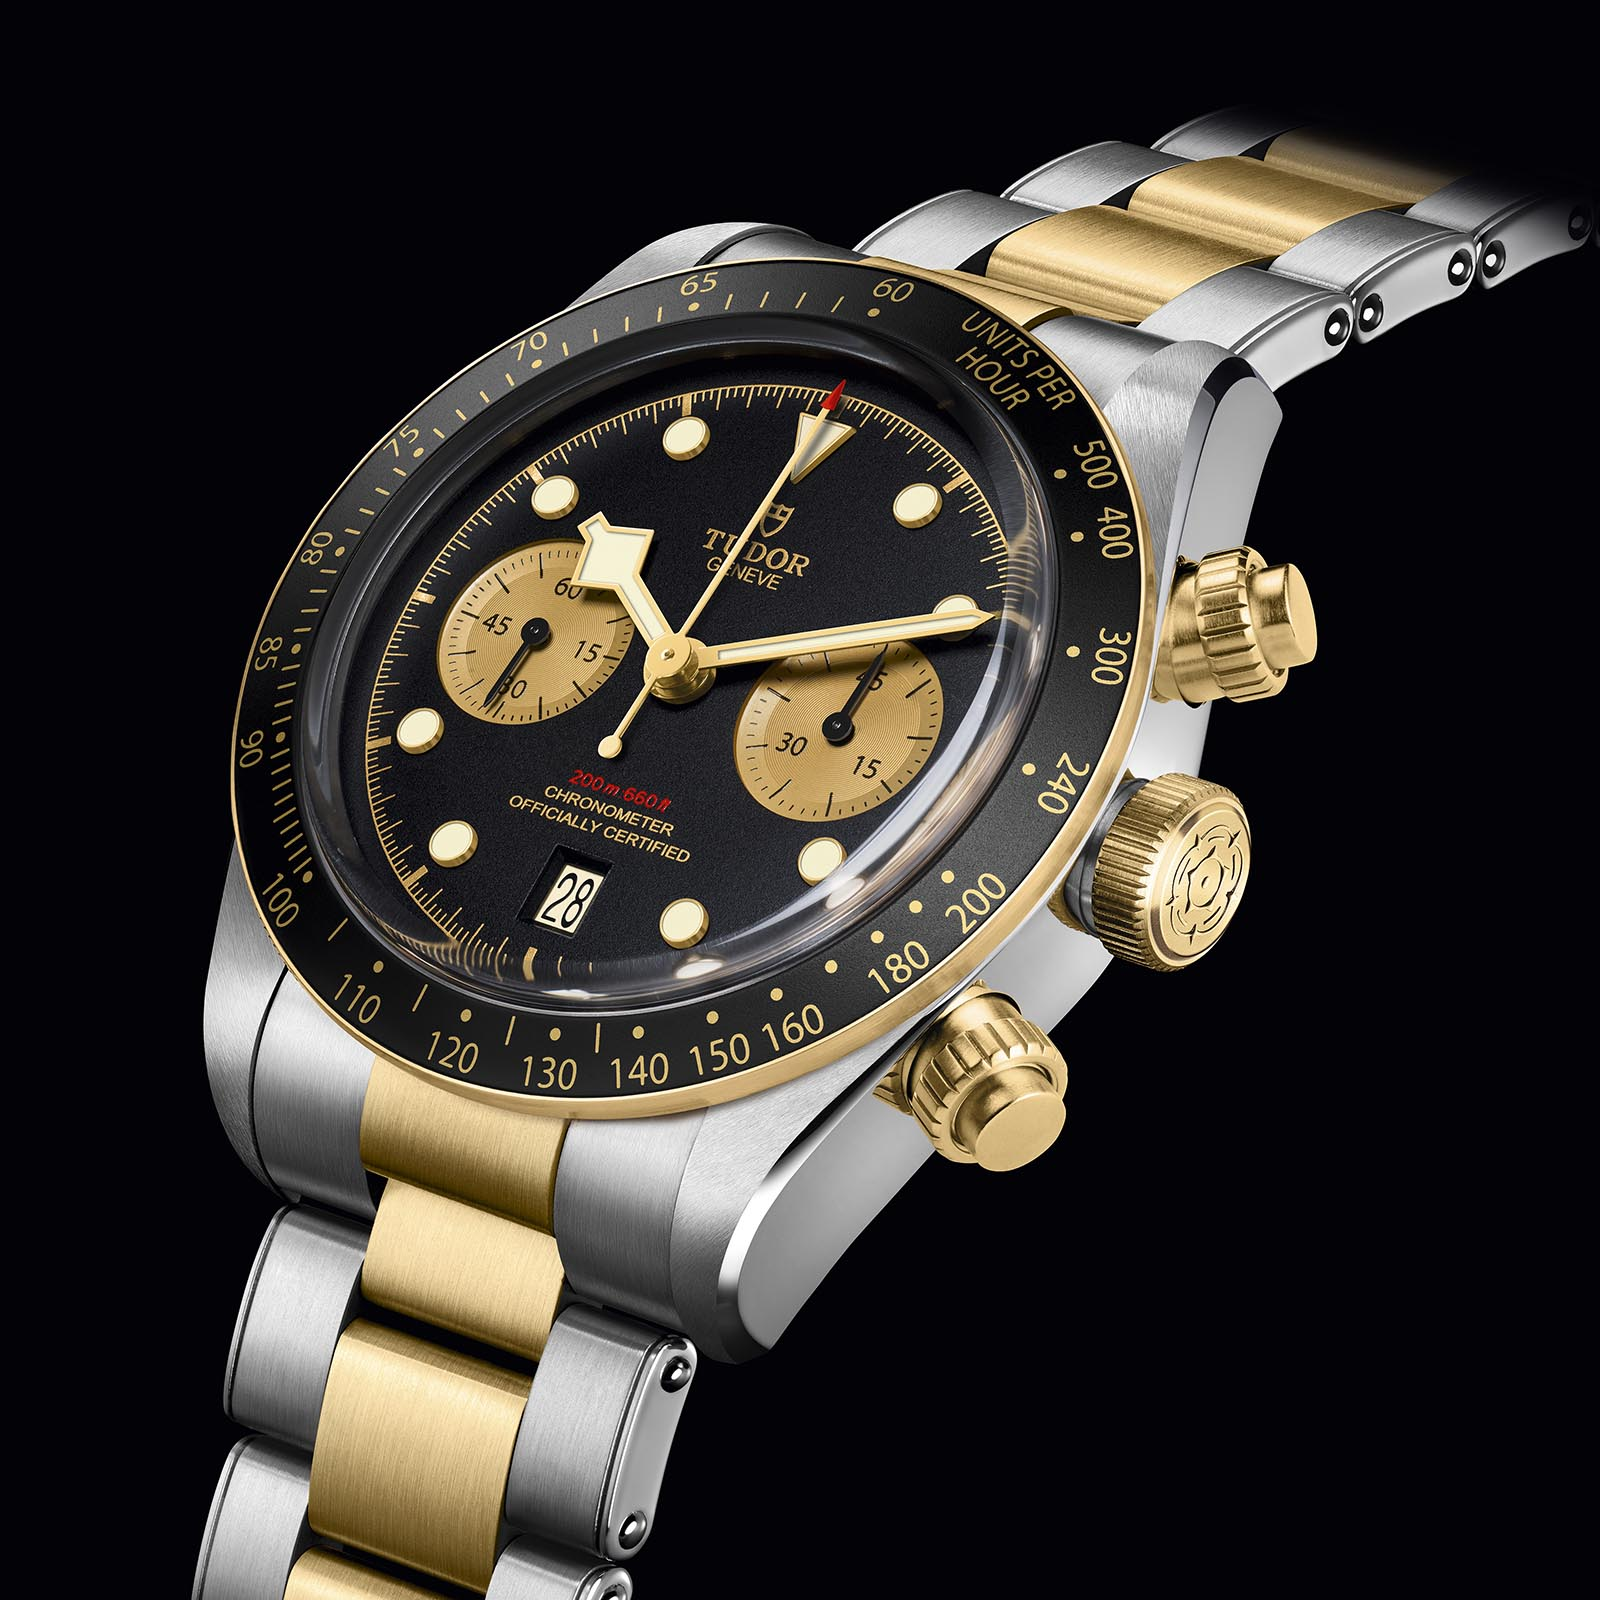 Tudor Black Bay Chronograph S&G 2